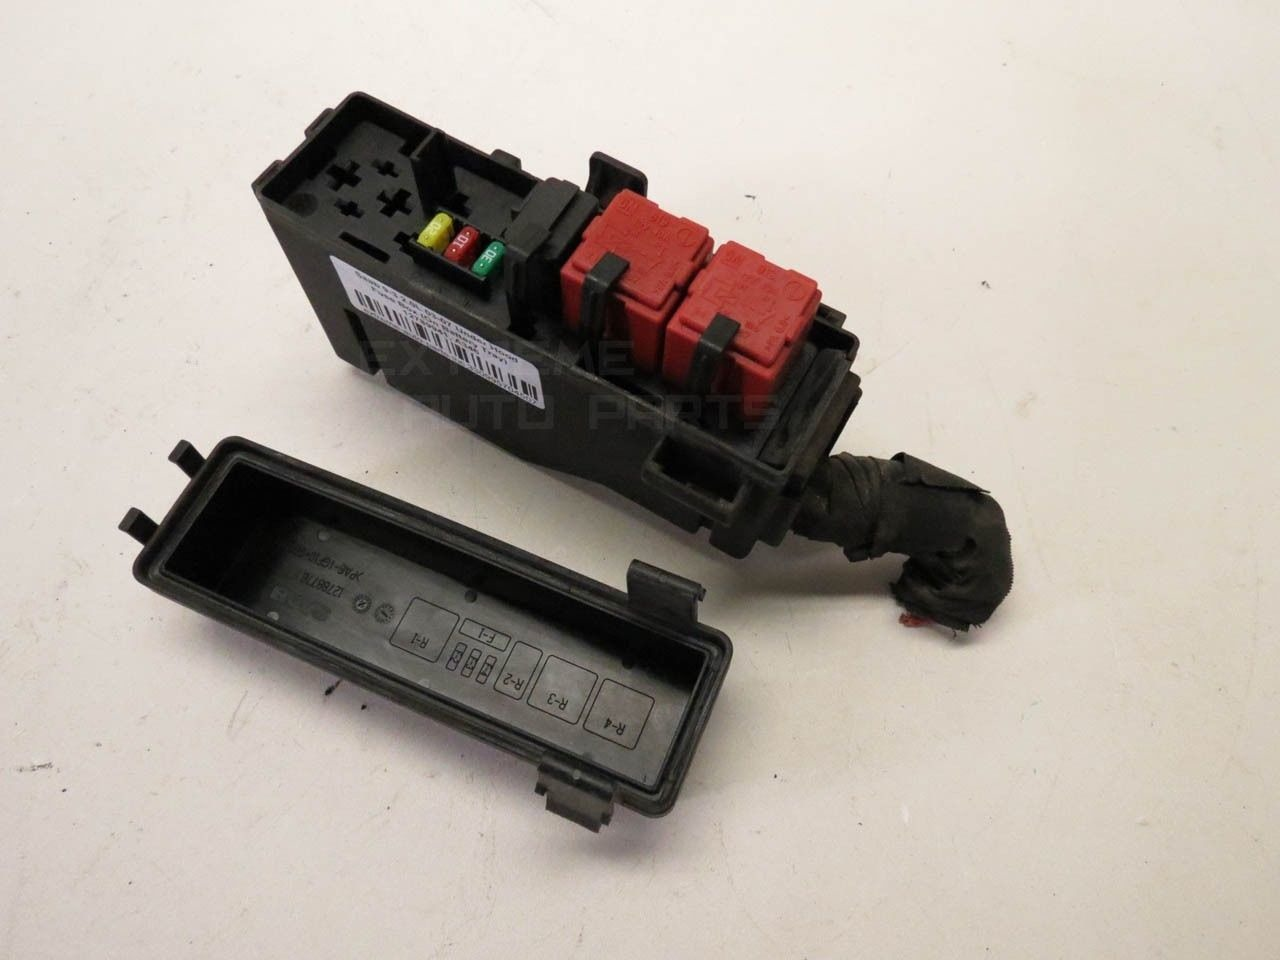 ... Saab 9-3 12788777 Secondary Under Hood Fuse Box (On Battery Tray) 03